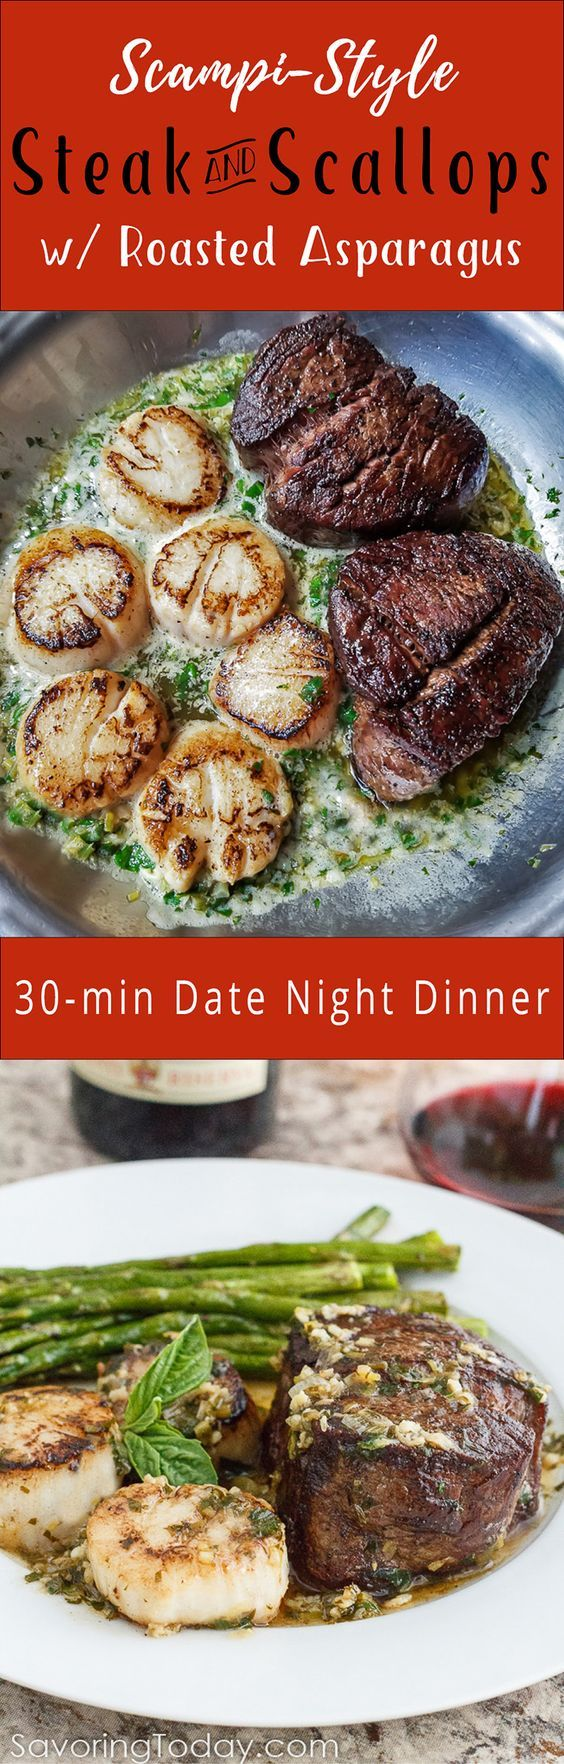 "Skip the crowded restaurant scene and make this Scampi-Style Steak & Scallops recipe part of your sweetheart dinner this Valentine's Day. Ready in about 30 minutes, every bites says, ""You're worth it."""